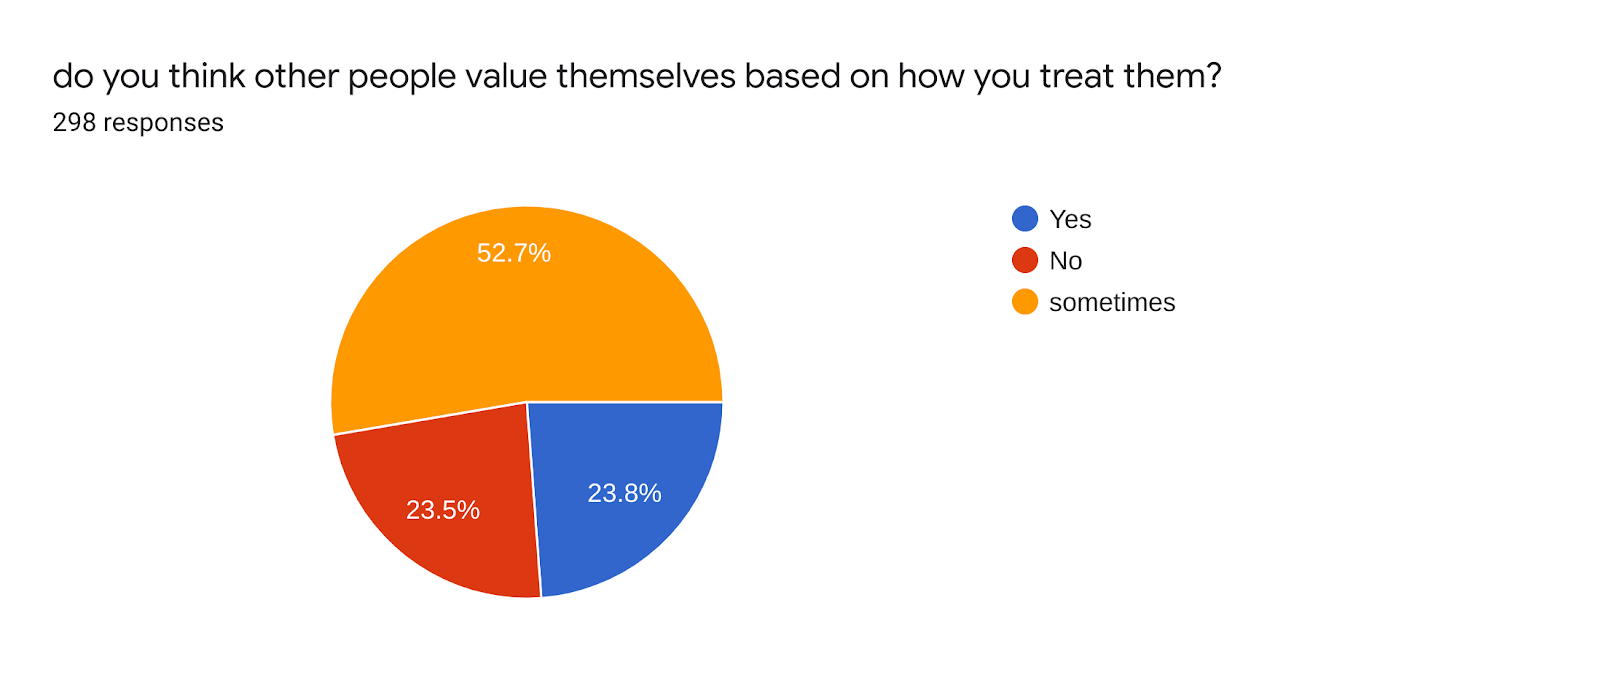 Forms response chart. Question title: do you think other people value themselves based on how you treat them?. Number of responses: 298 responses.